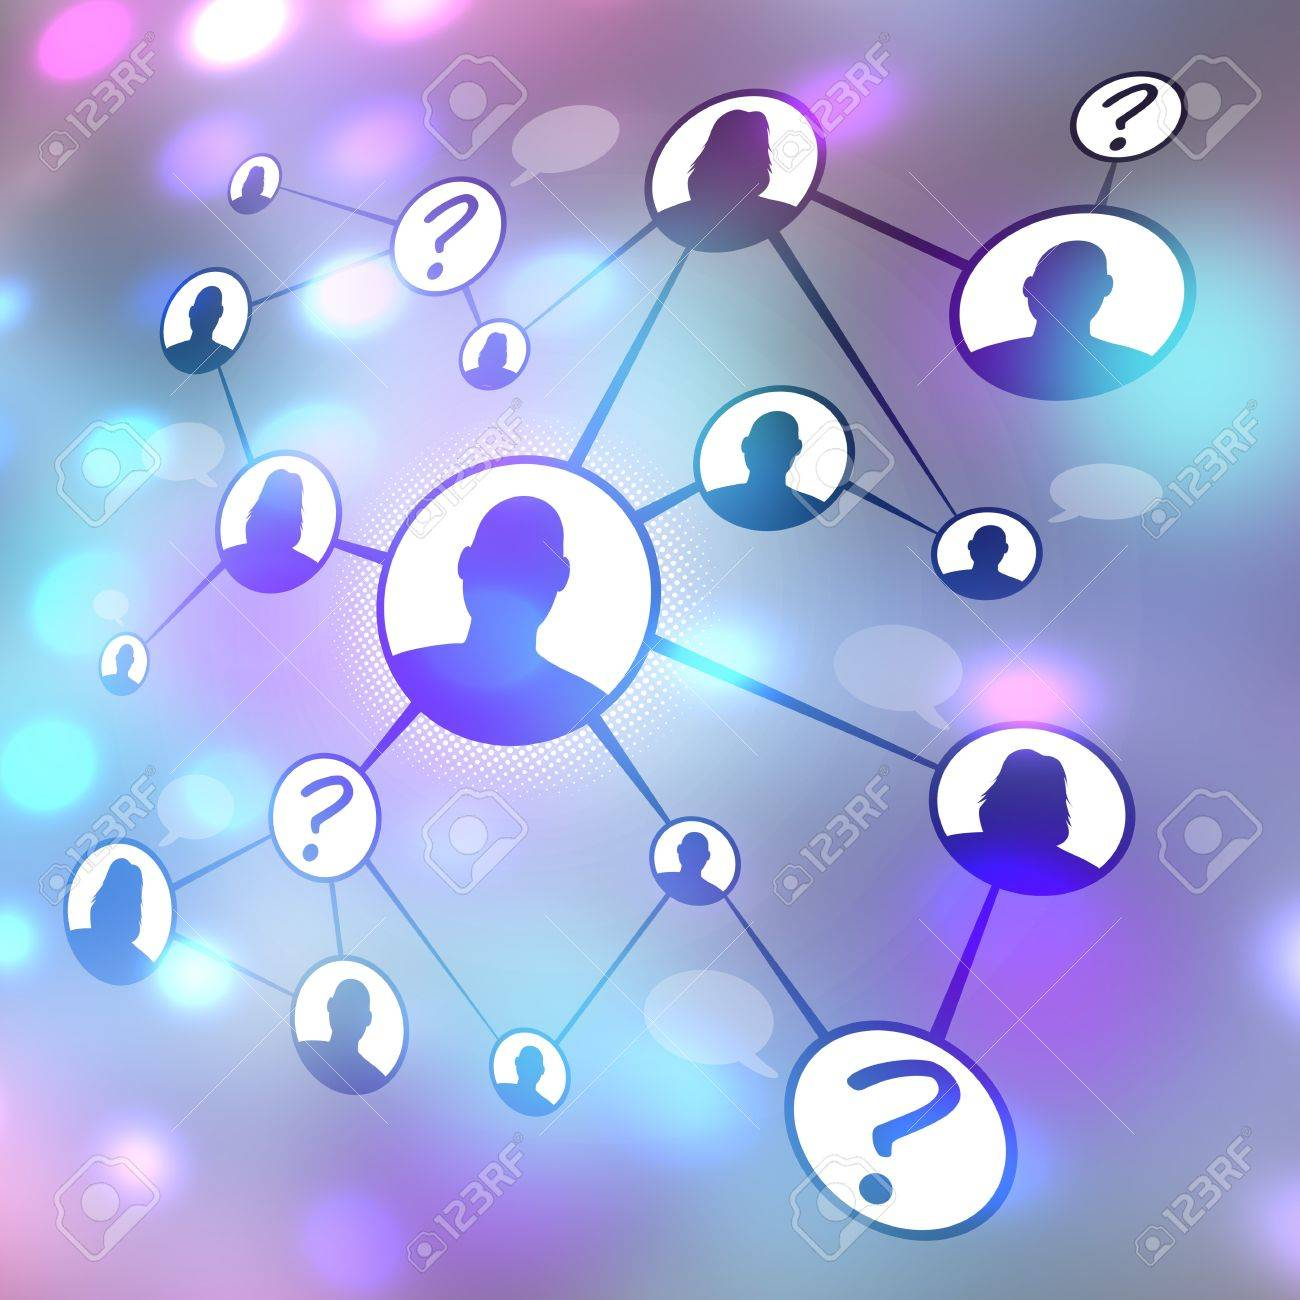 A flow chart diagram of different men and women connecting together via social media or social networking.  Great for word of mouth referral marketing or online dating concepts. Stock Photo - 21735780